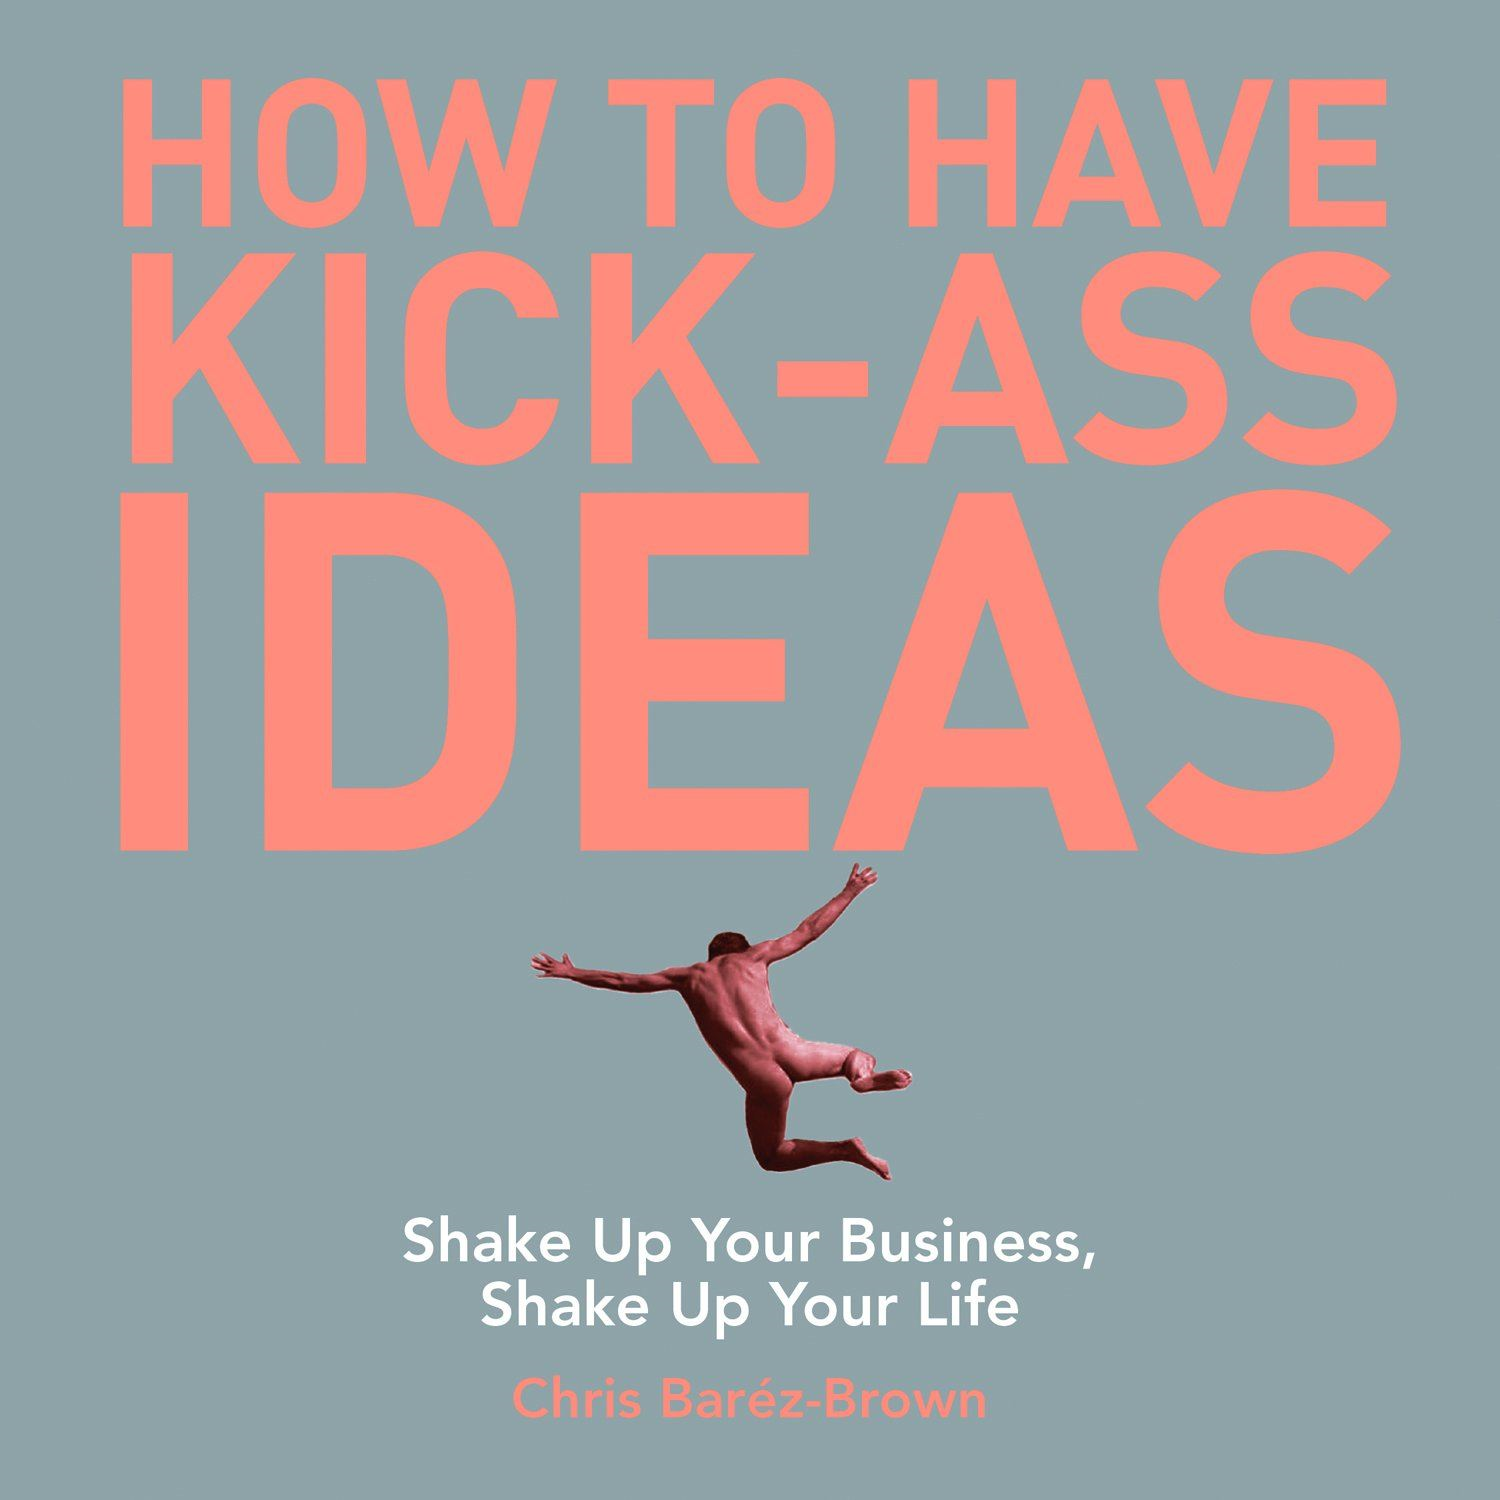 How to Have Kick-Ass Ideas: Shake Up Your Business, Shake Up Your Life